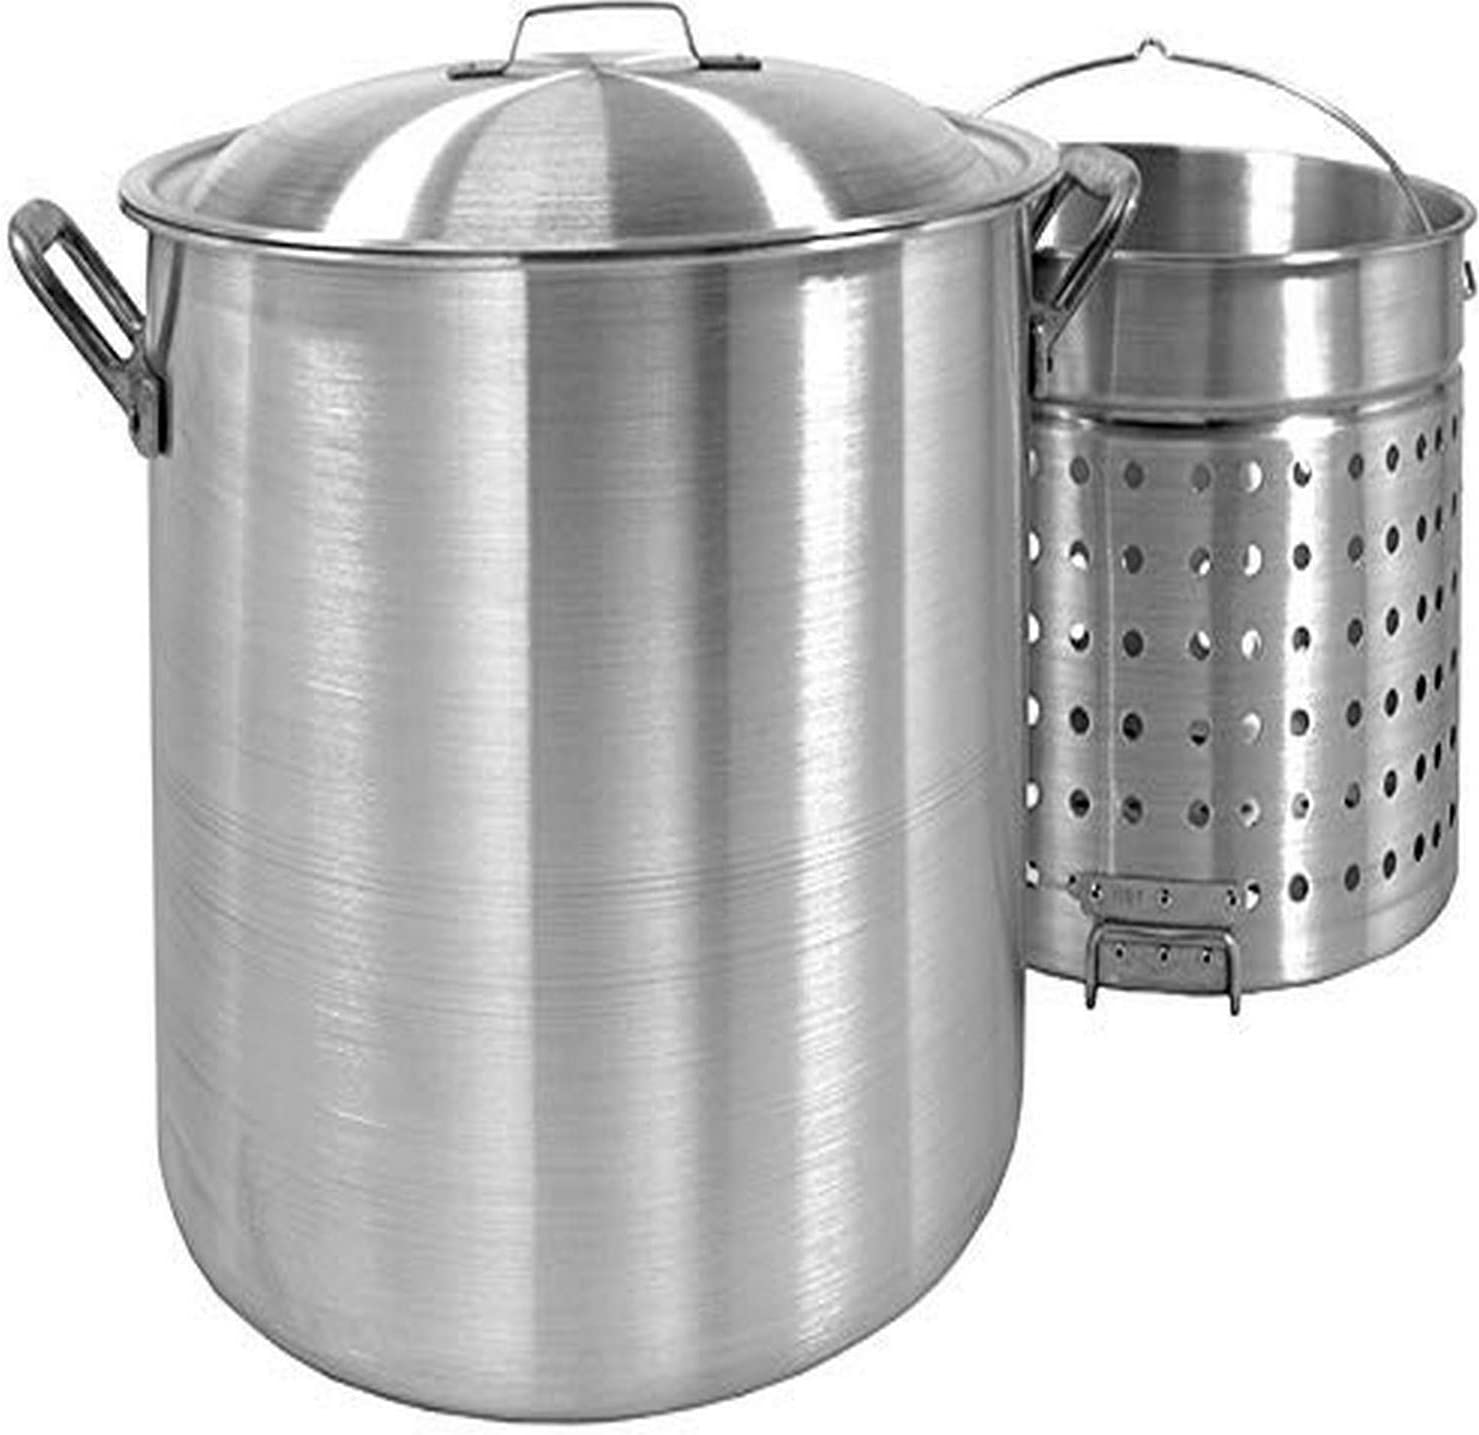 Bayou Classic 1000 100-Qt. Aluminum Stockpot with Boil Basket